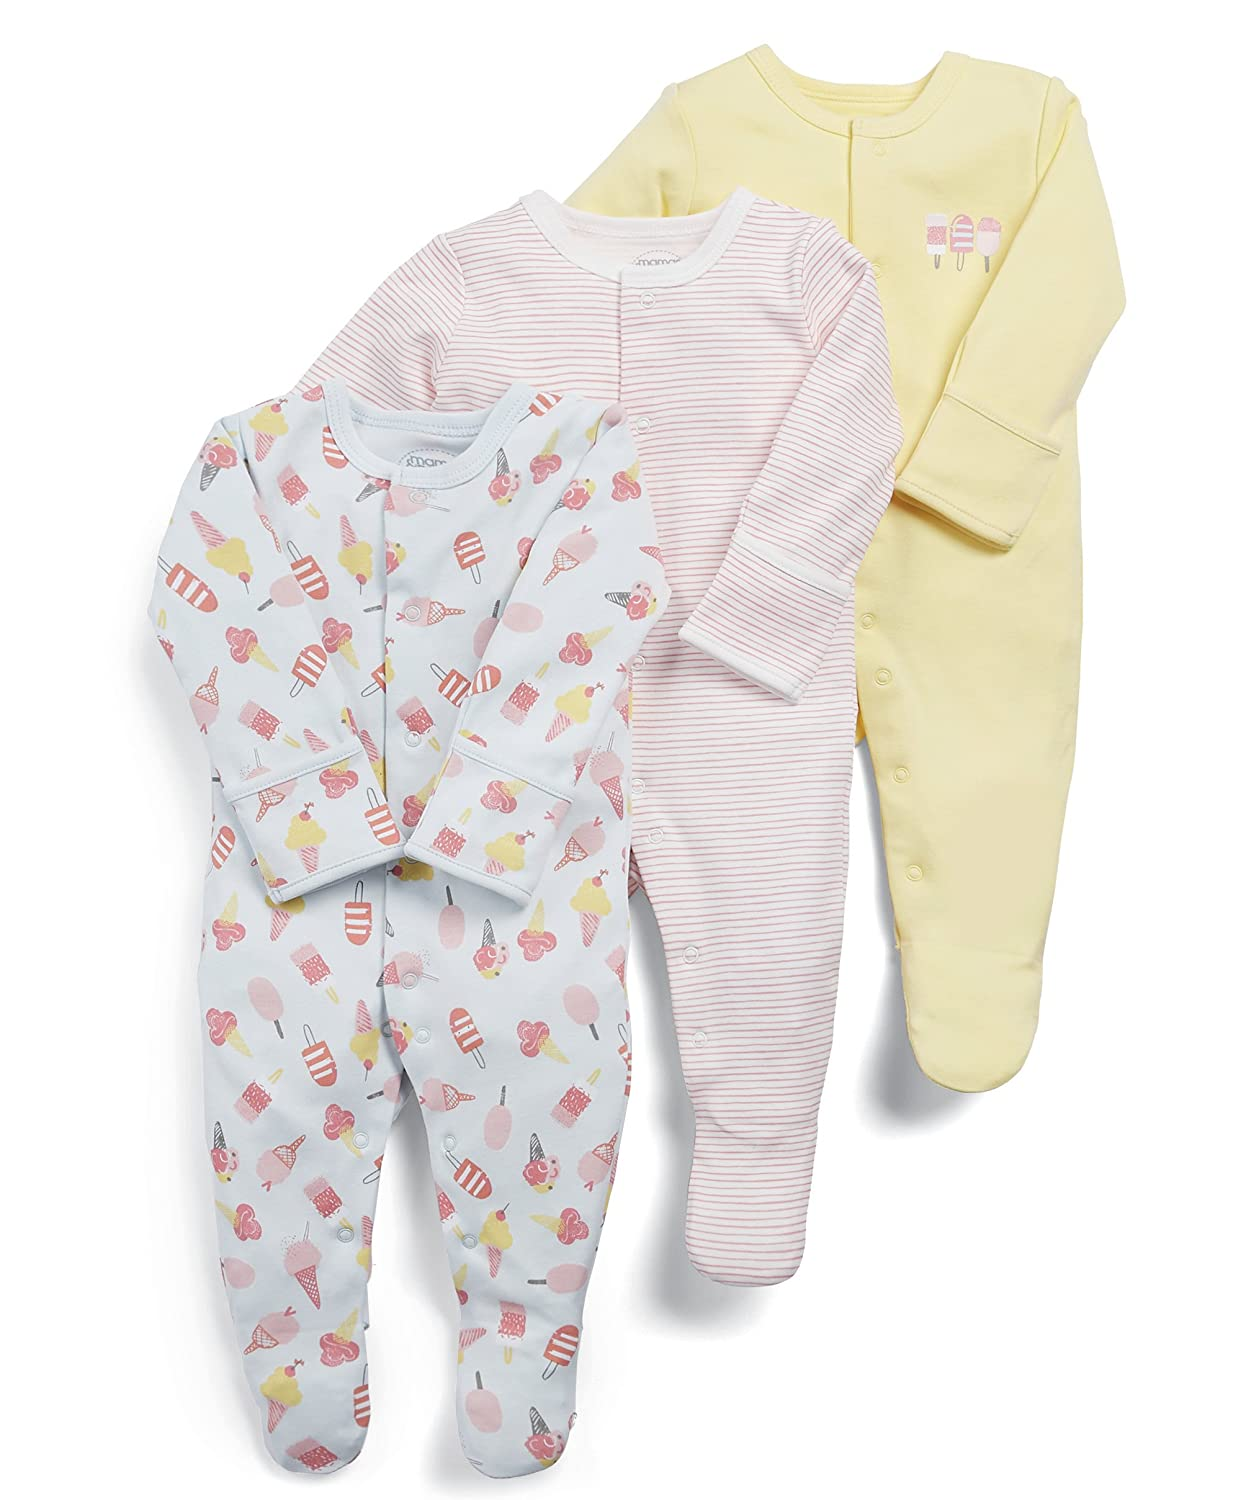 Mamas & Papas Baby Girls' Sleepsuit Pack of 3 Mamas and Papas